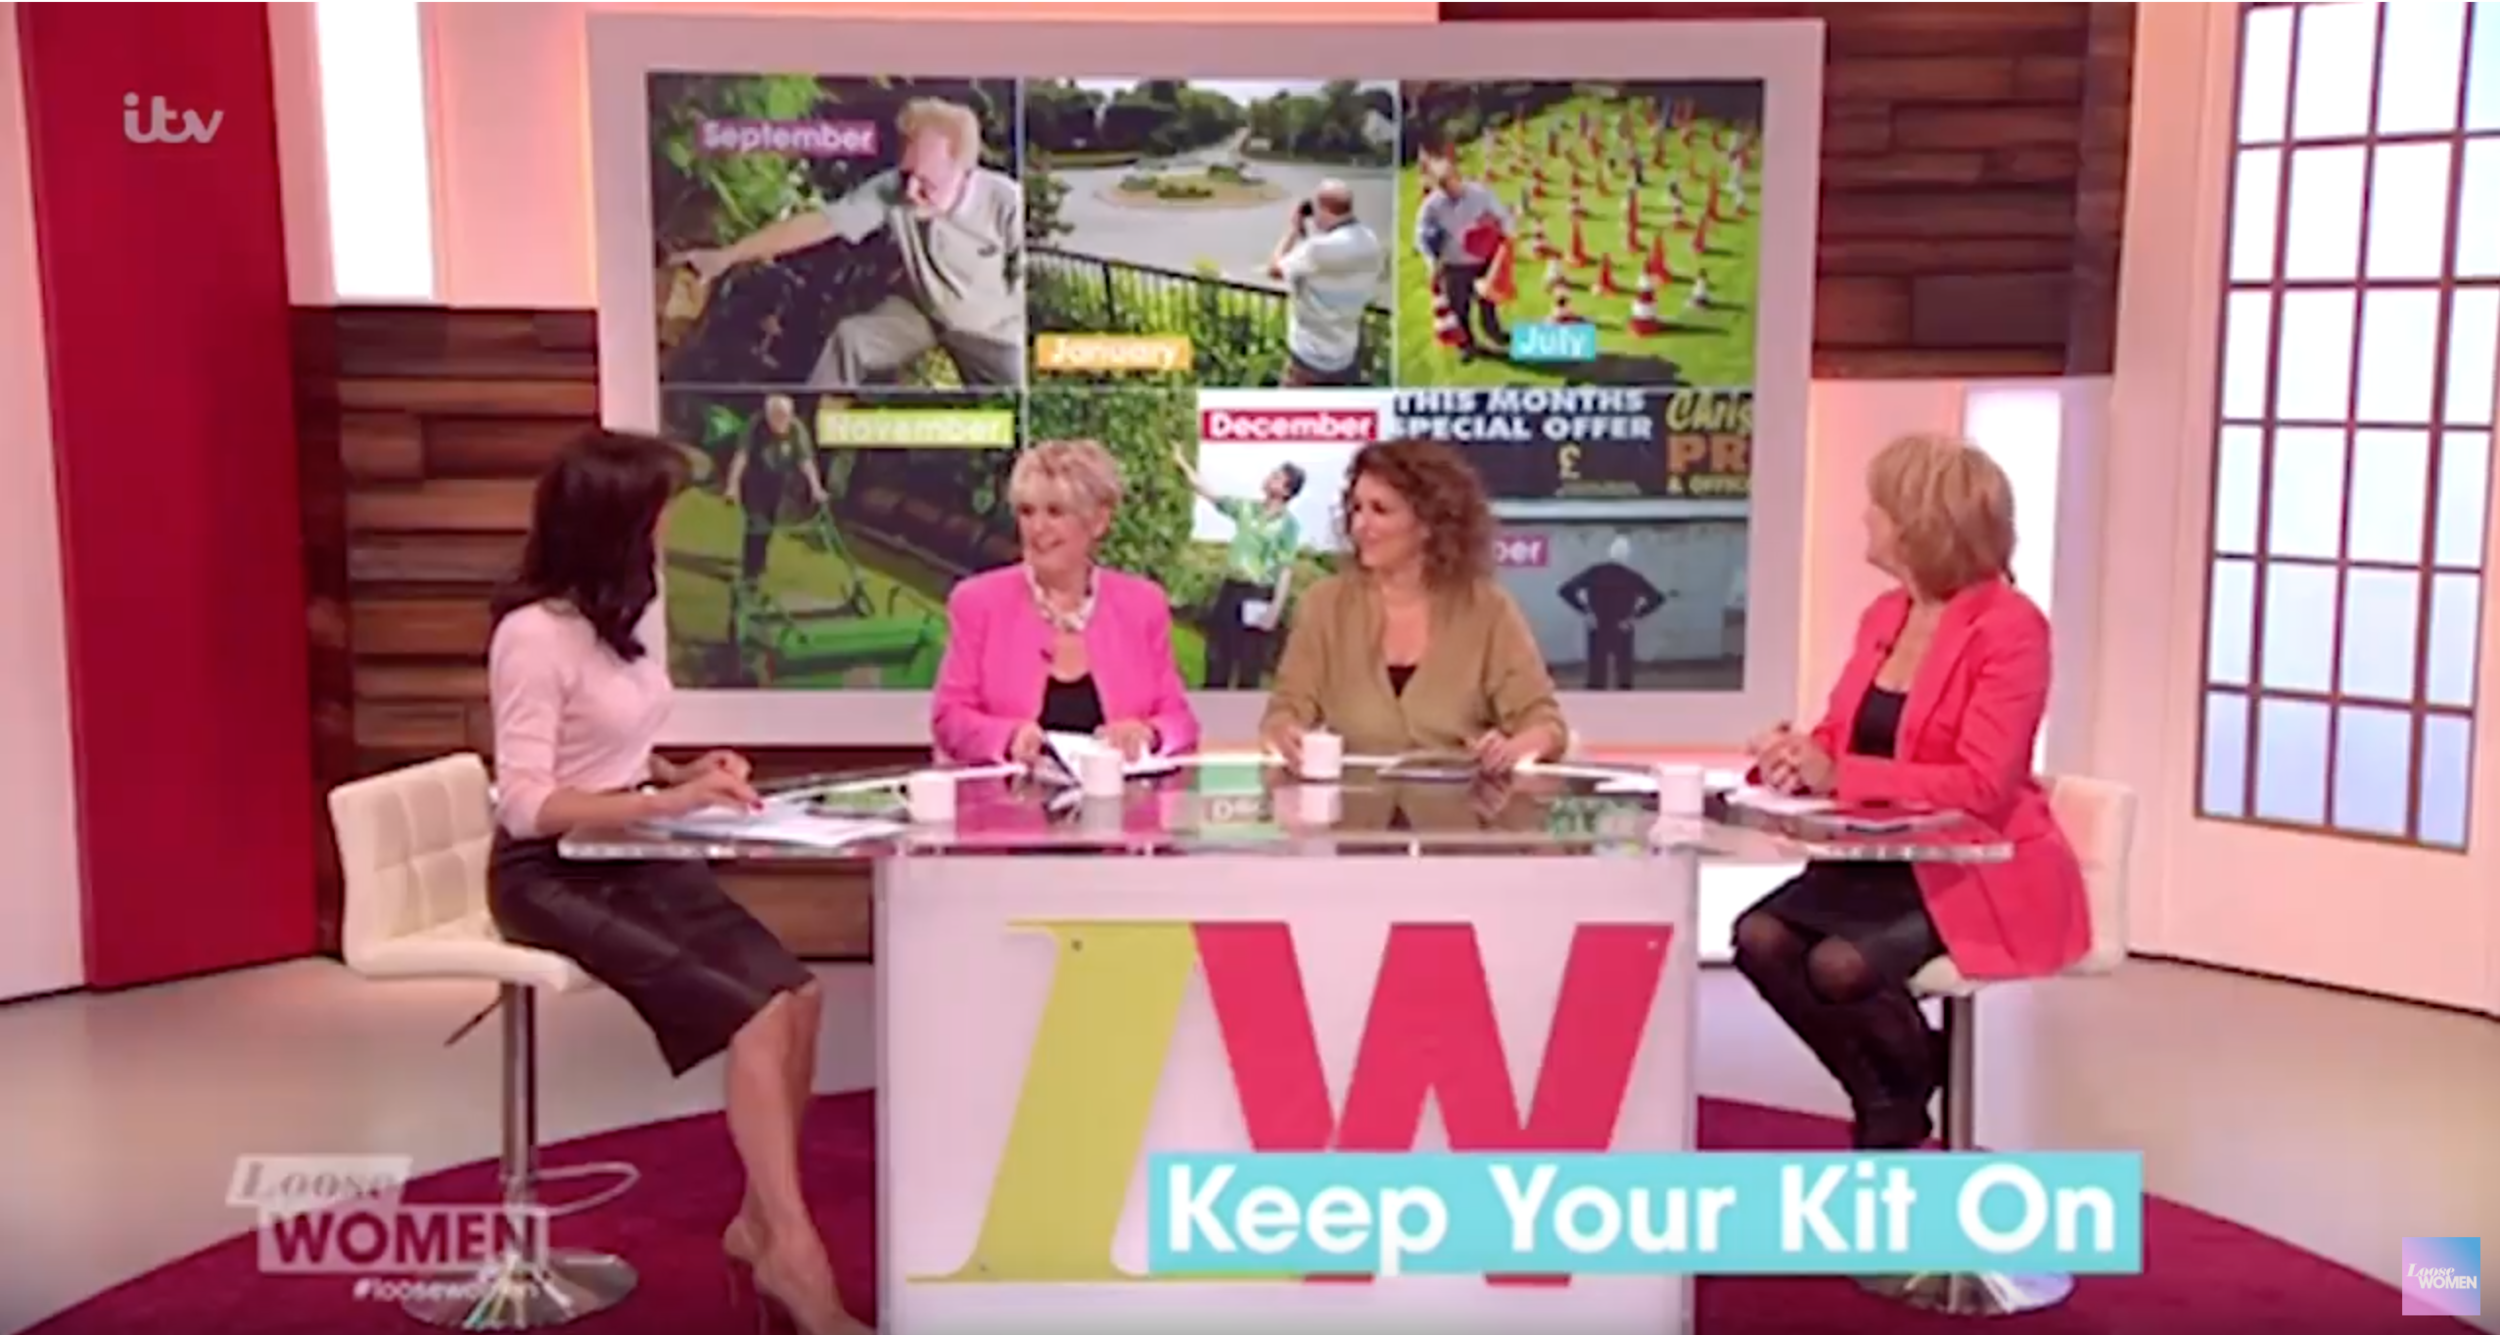 Loose Women - Our photography on the Dull Men's Club calendar appeared on numerous national TV programmes, including ITV National News, The Wright Stuff and Loose Women.